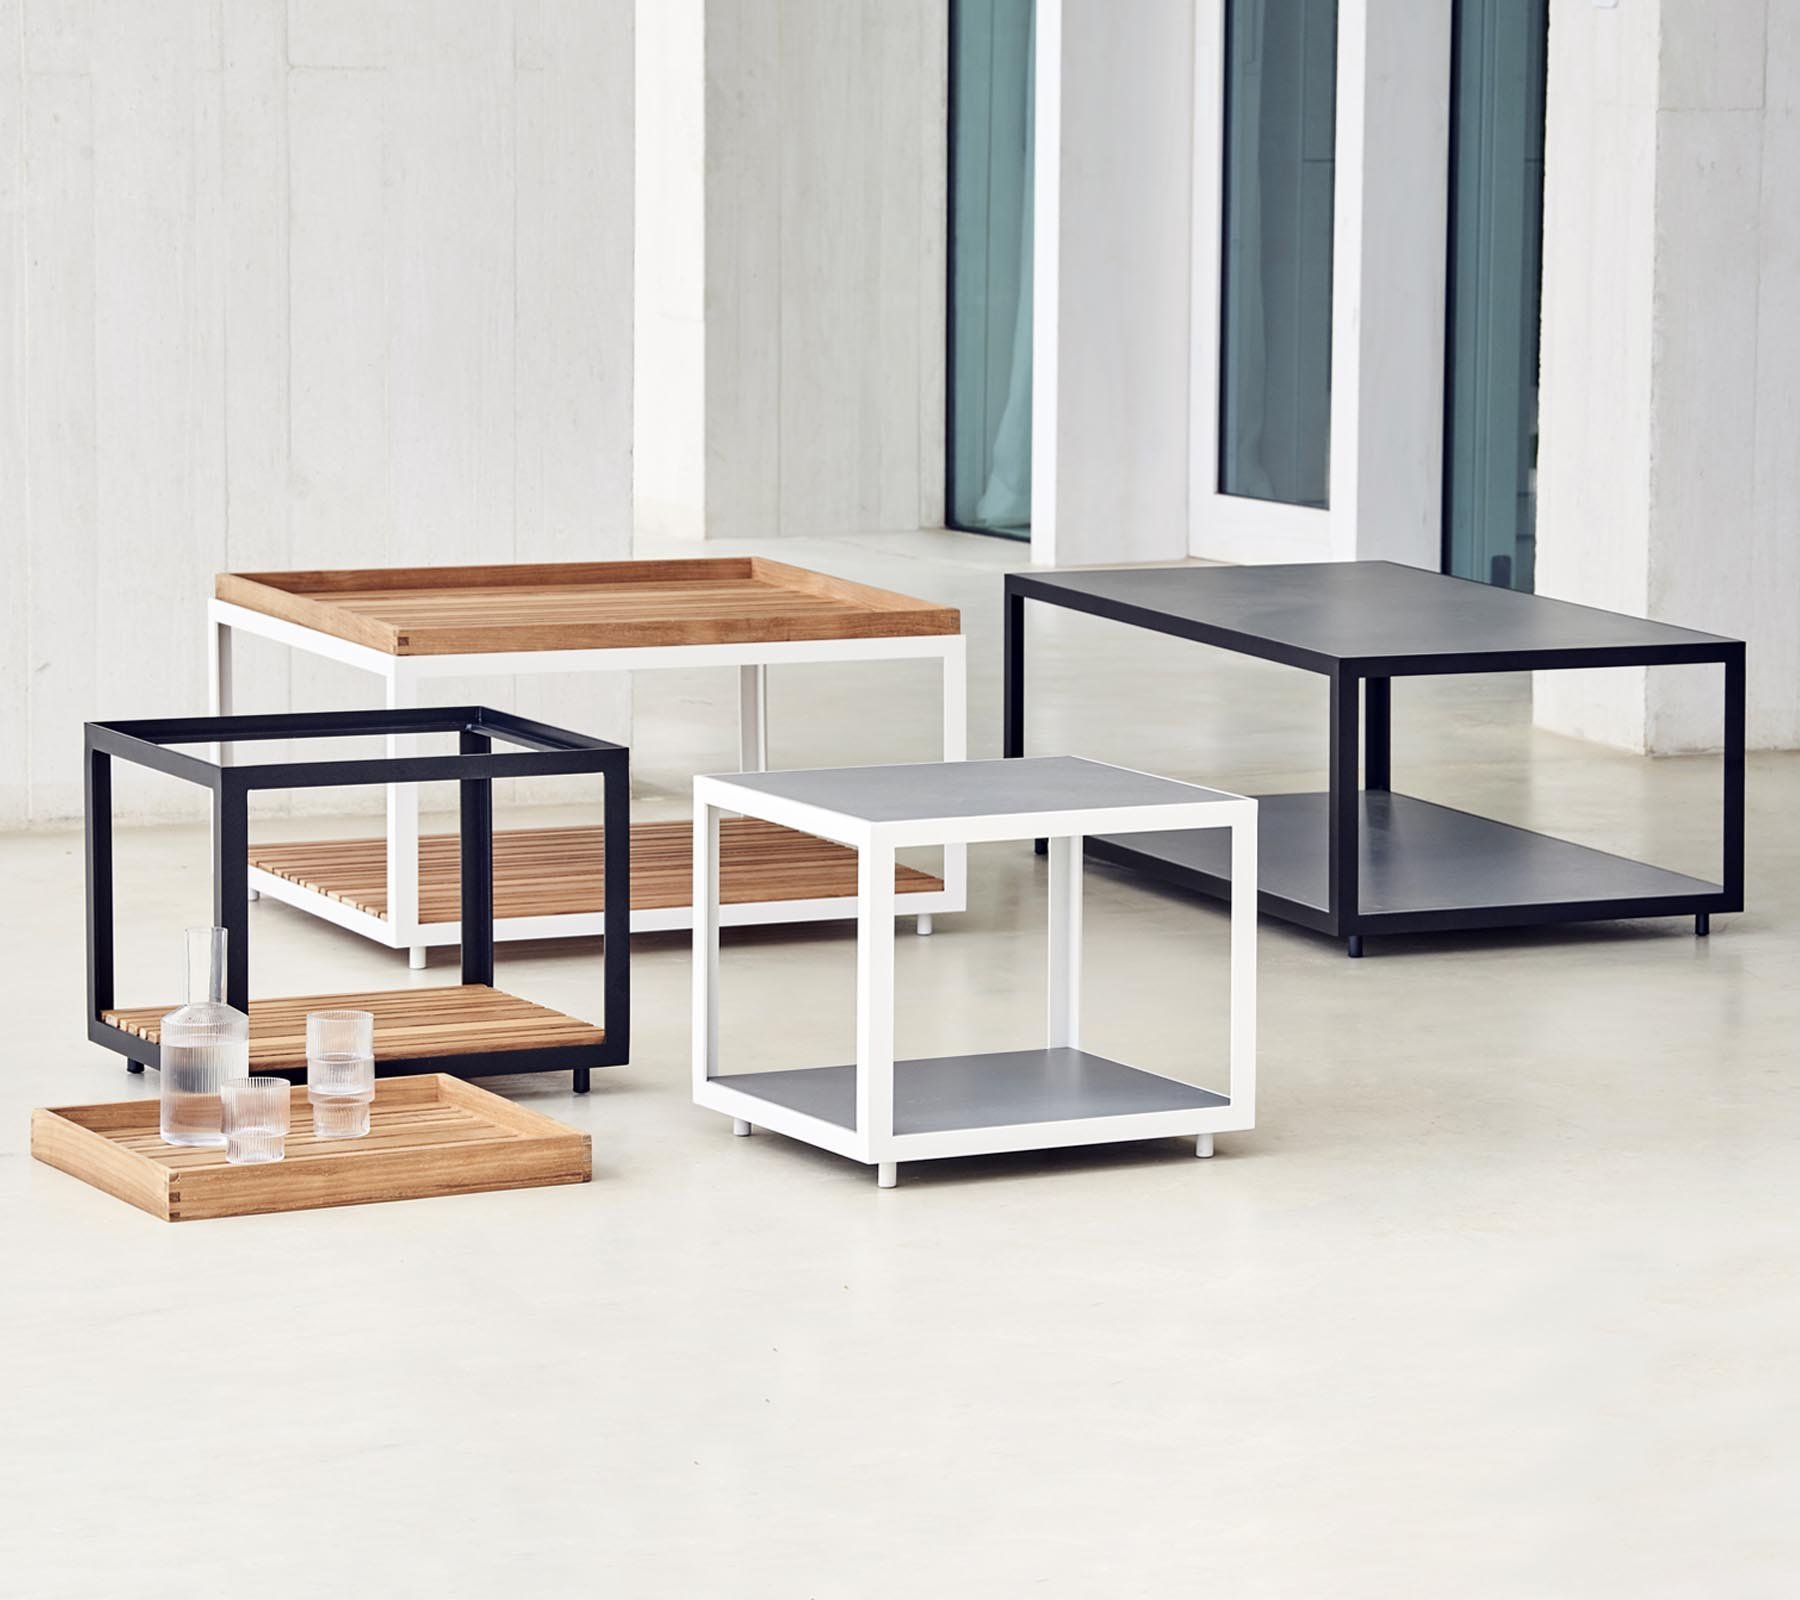 Level Coffee Table from Cane-line, designed by byKATO